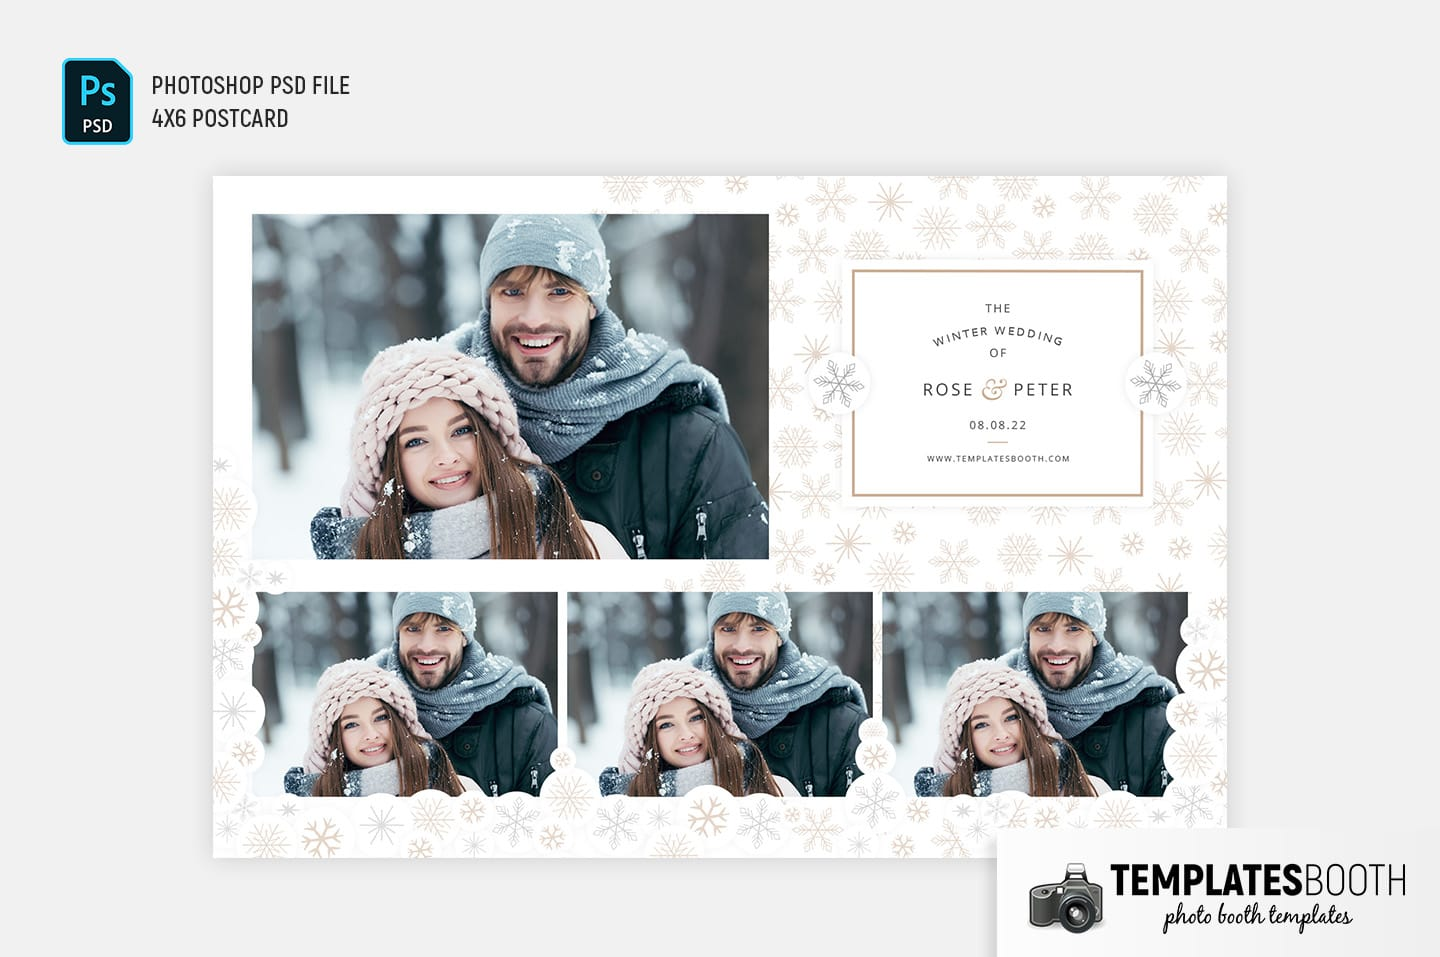 Contemporary Winter Photo Booth Template (4x6 postcard)